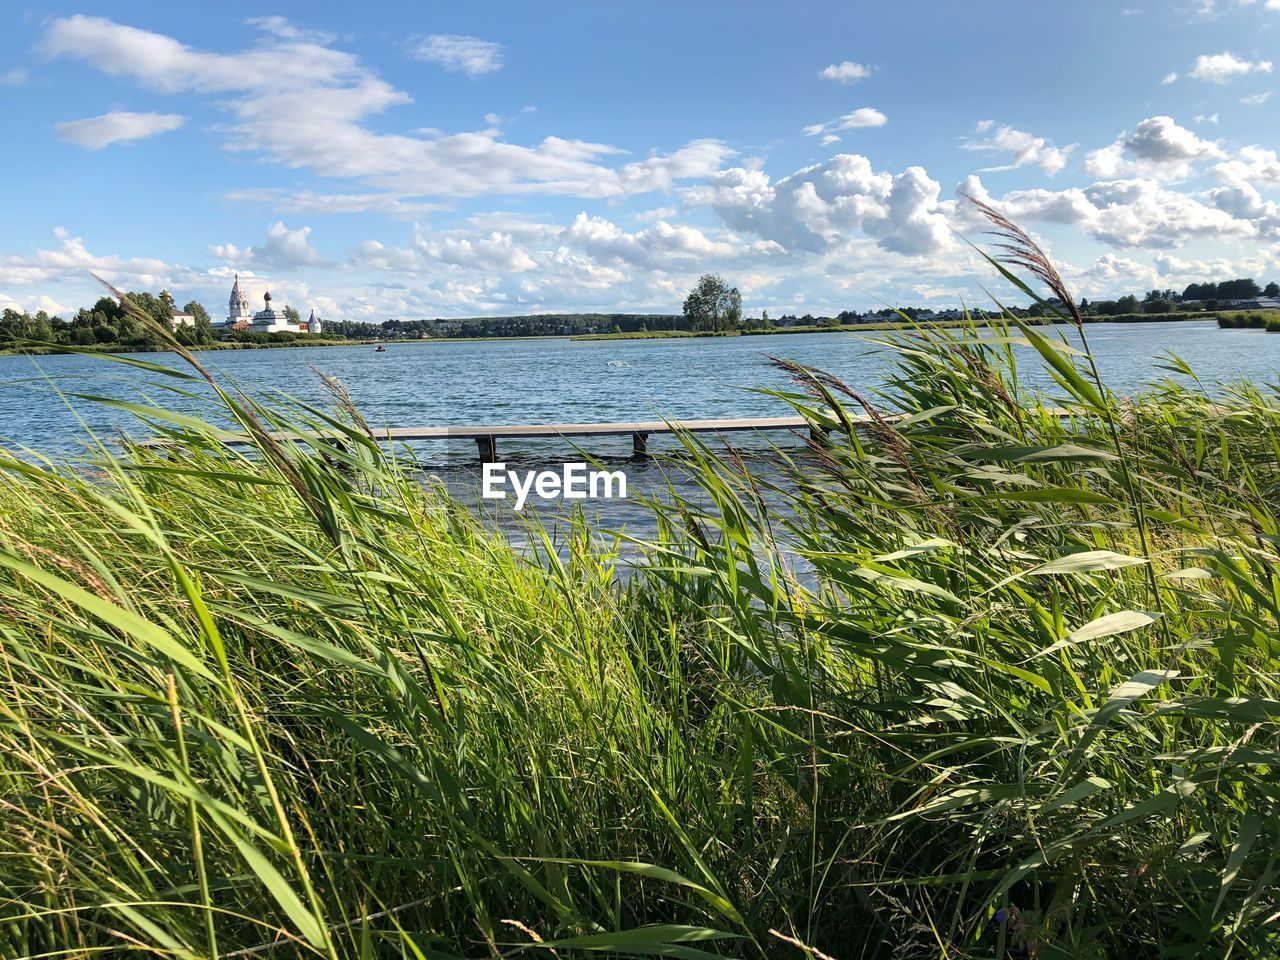 plant, water, sky, cloud - sky, growth, grass, beauty in nature, nature, tranquility, day, scenics - nature, tranquil scene, no people, green color, lake, non-urban scene, land, outdoors